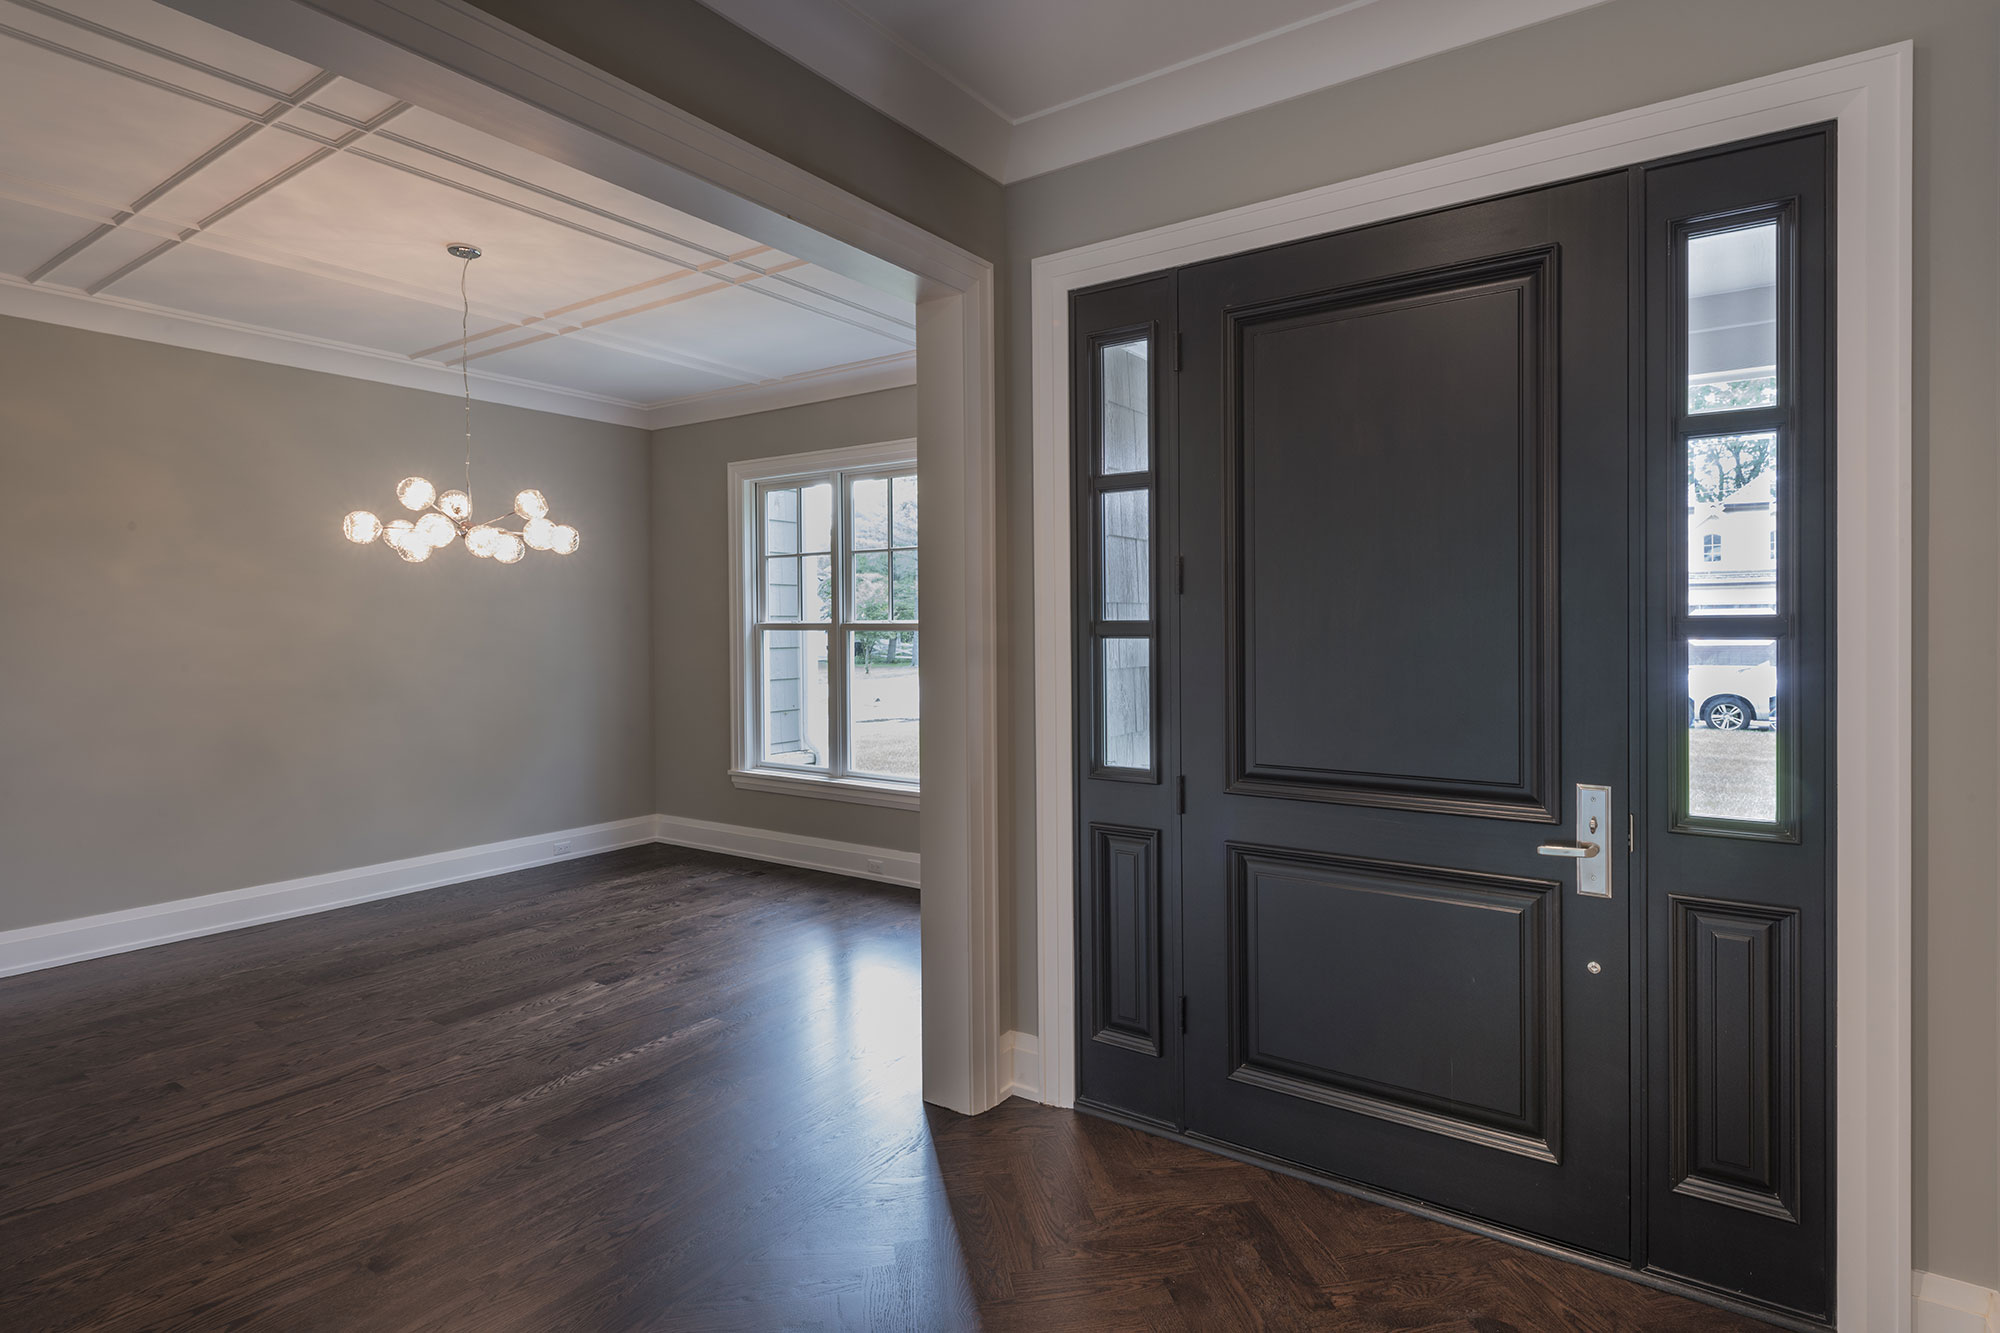 1525-Canterbury-Glenview - Front-Doors,-Sitting-Room-View - Globex Developments Custom Homes